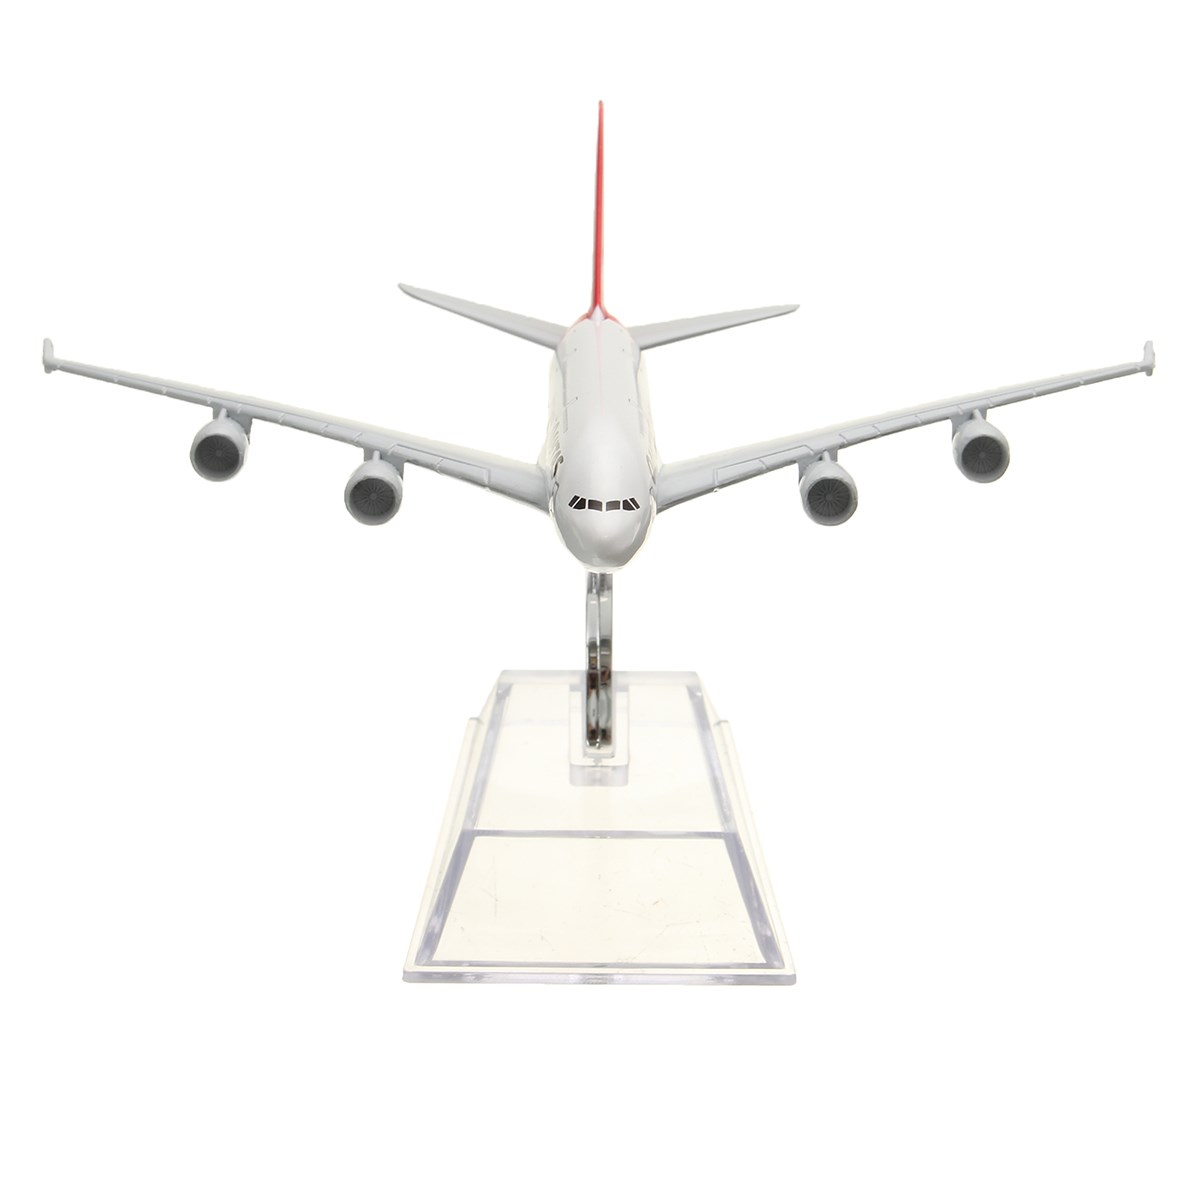 16cm Airplane Metal Plane Model Aircraft A380 AUSTRALIA QANTAS Aeroplane Scale Desk Toy Model Building Kits Toy For Children(China)